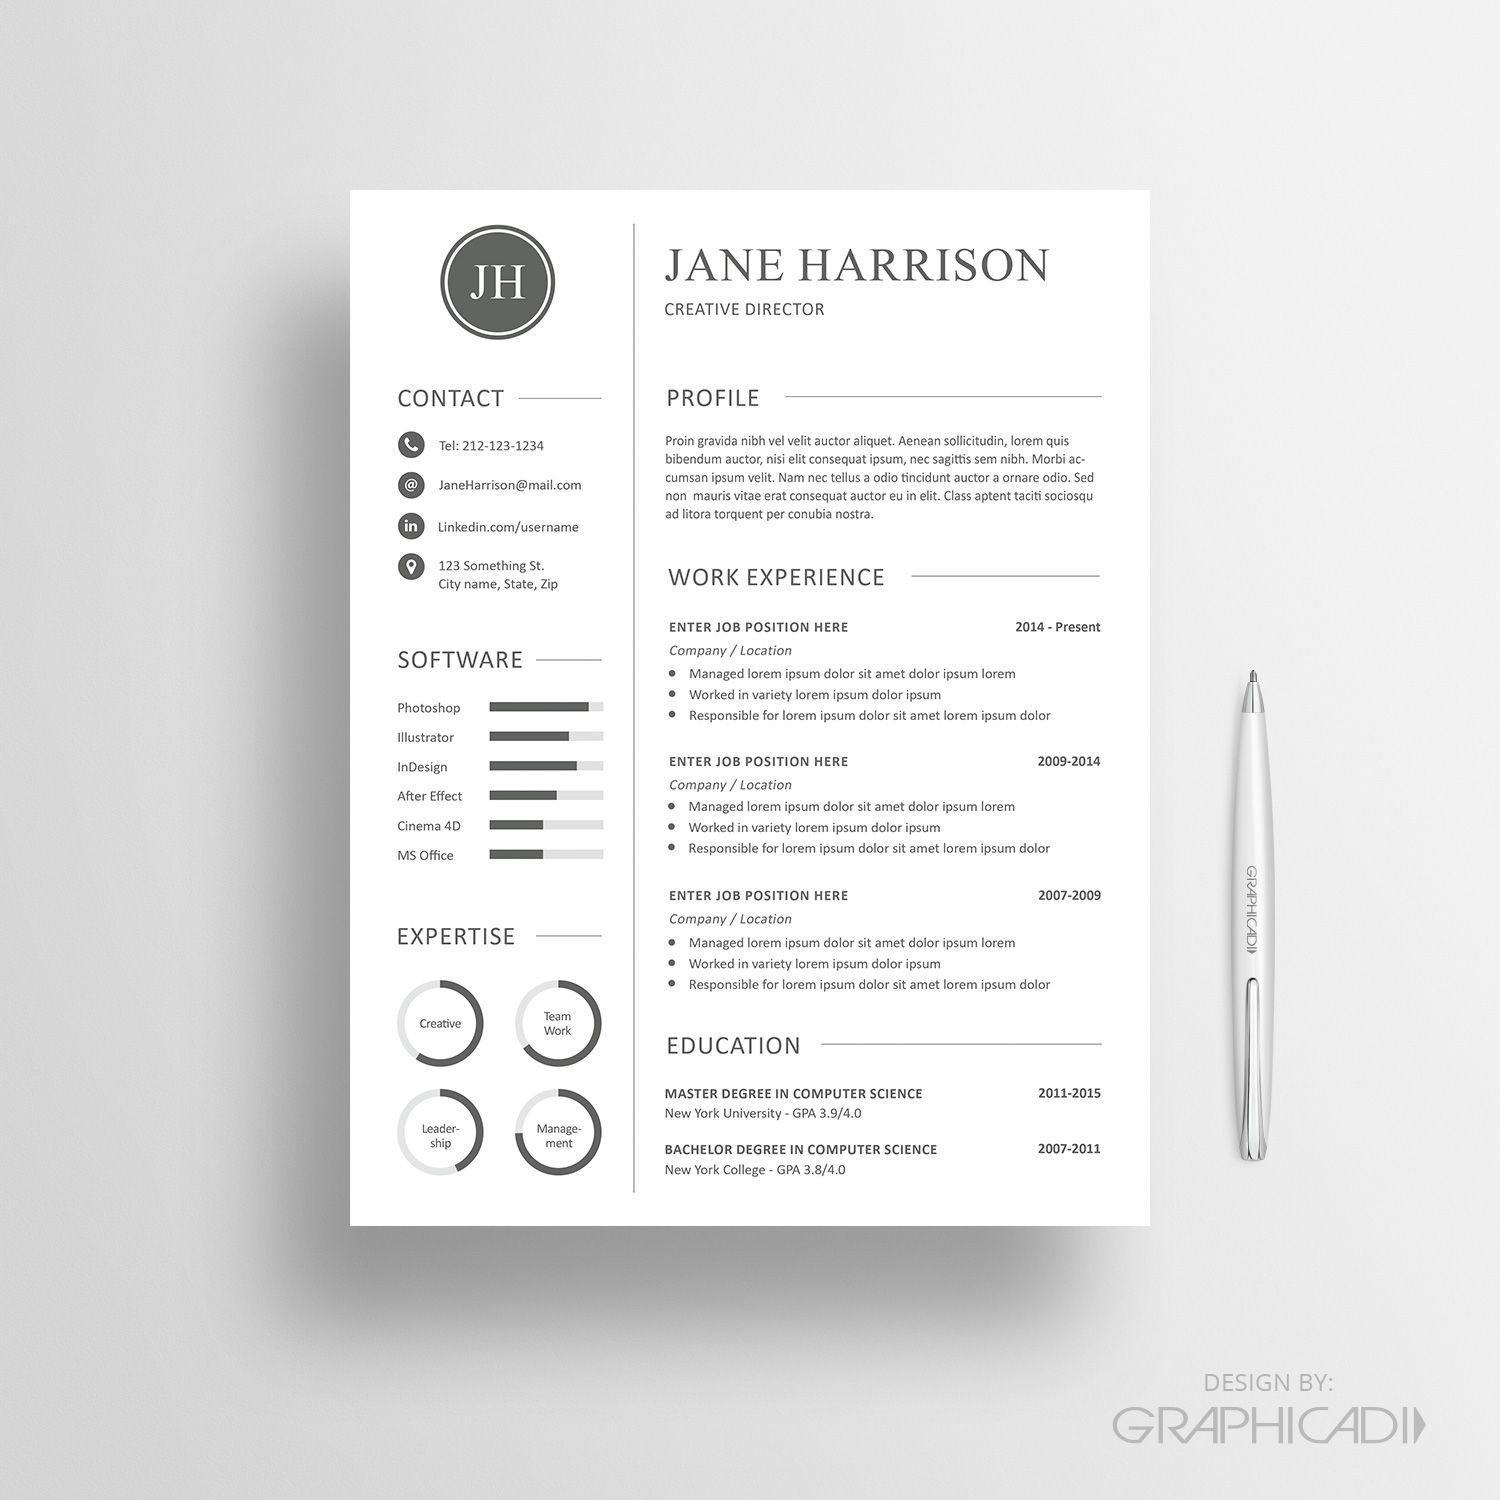 Resume Template 25 | CV | Pinterest